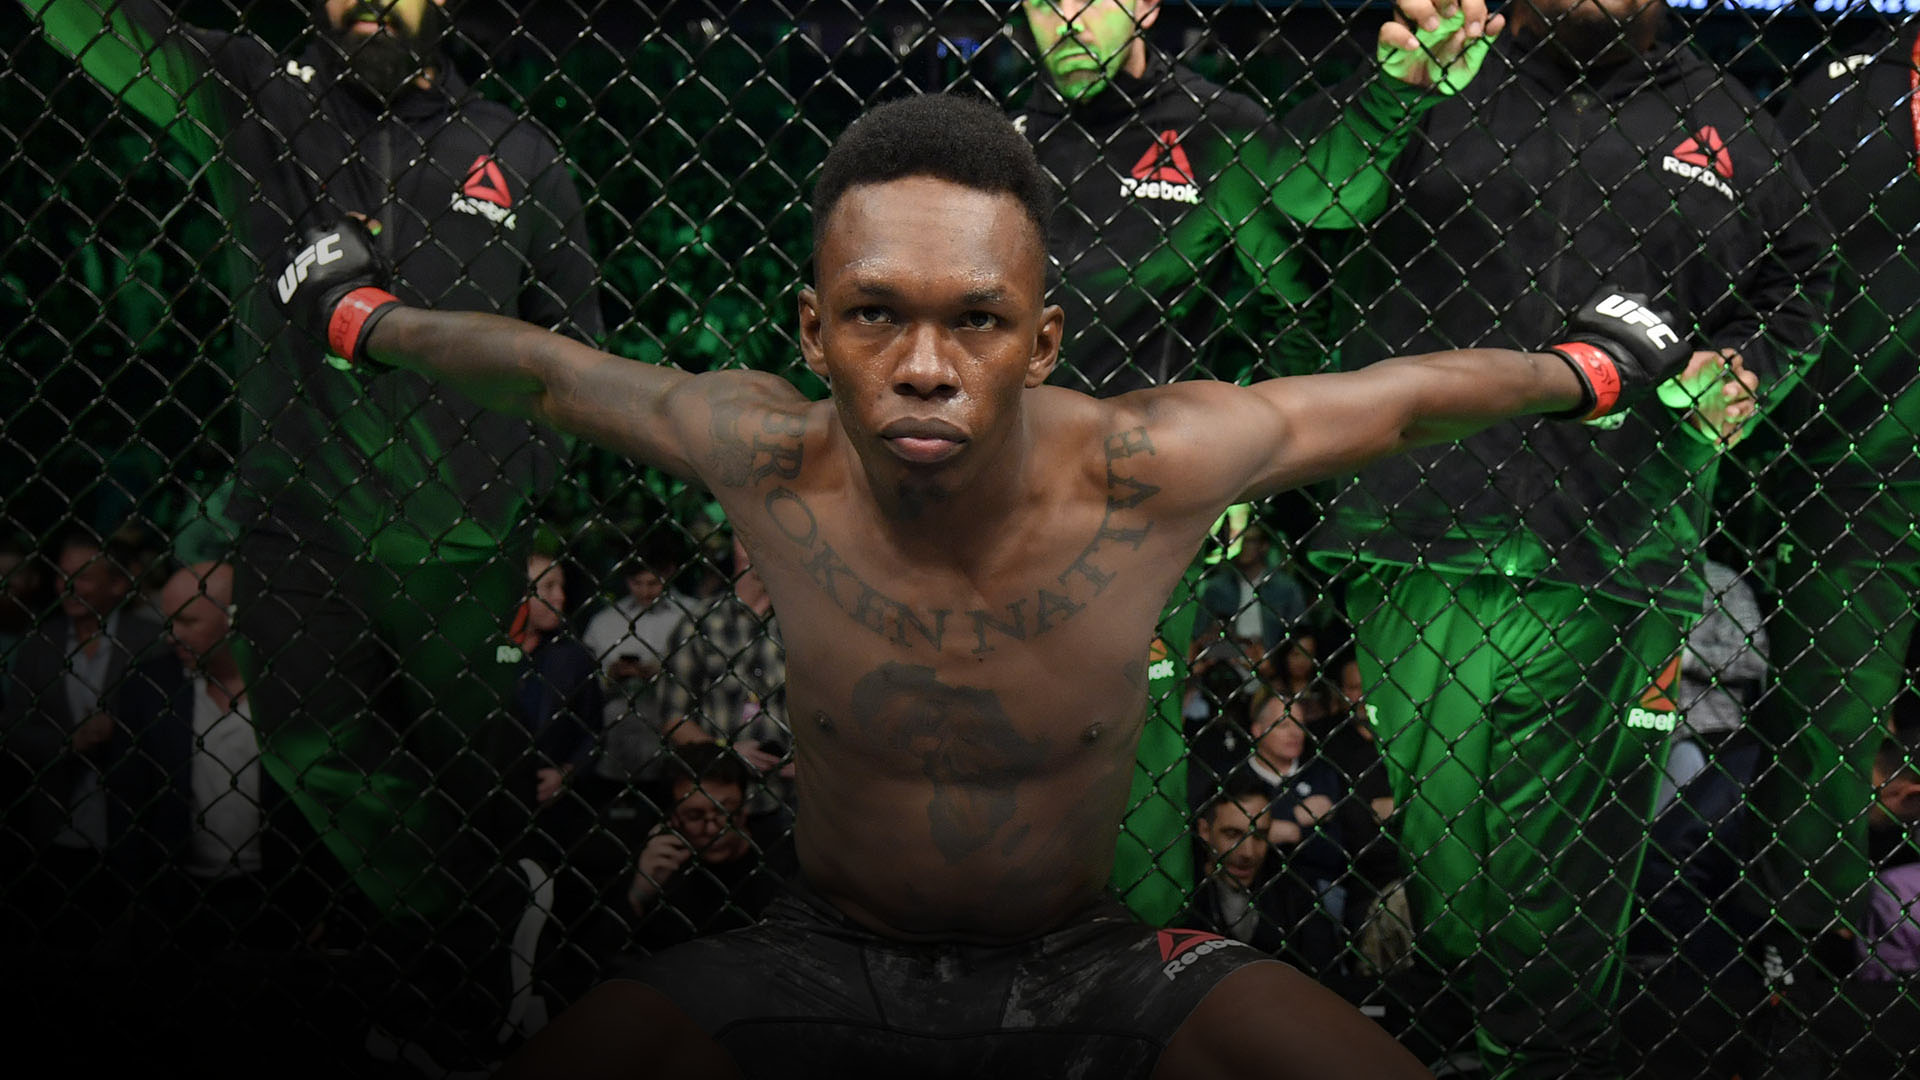 Israel Adesanya of Nigeria prepares to fight Yoel Romero of Cuba in their UFC middleweight championship fight during the UFC 248 event at T-Mobile Arena on March 07, 2020 in Las Vegas, Nevada. (Photo by Jeff Bottari/Zuffa LLC)